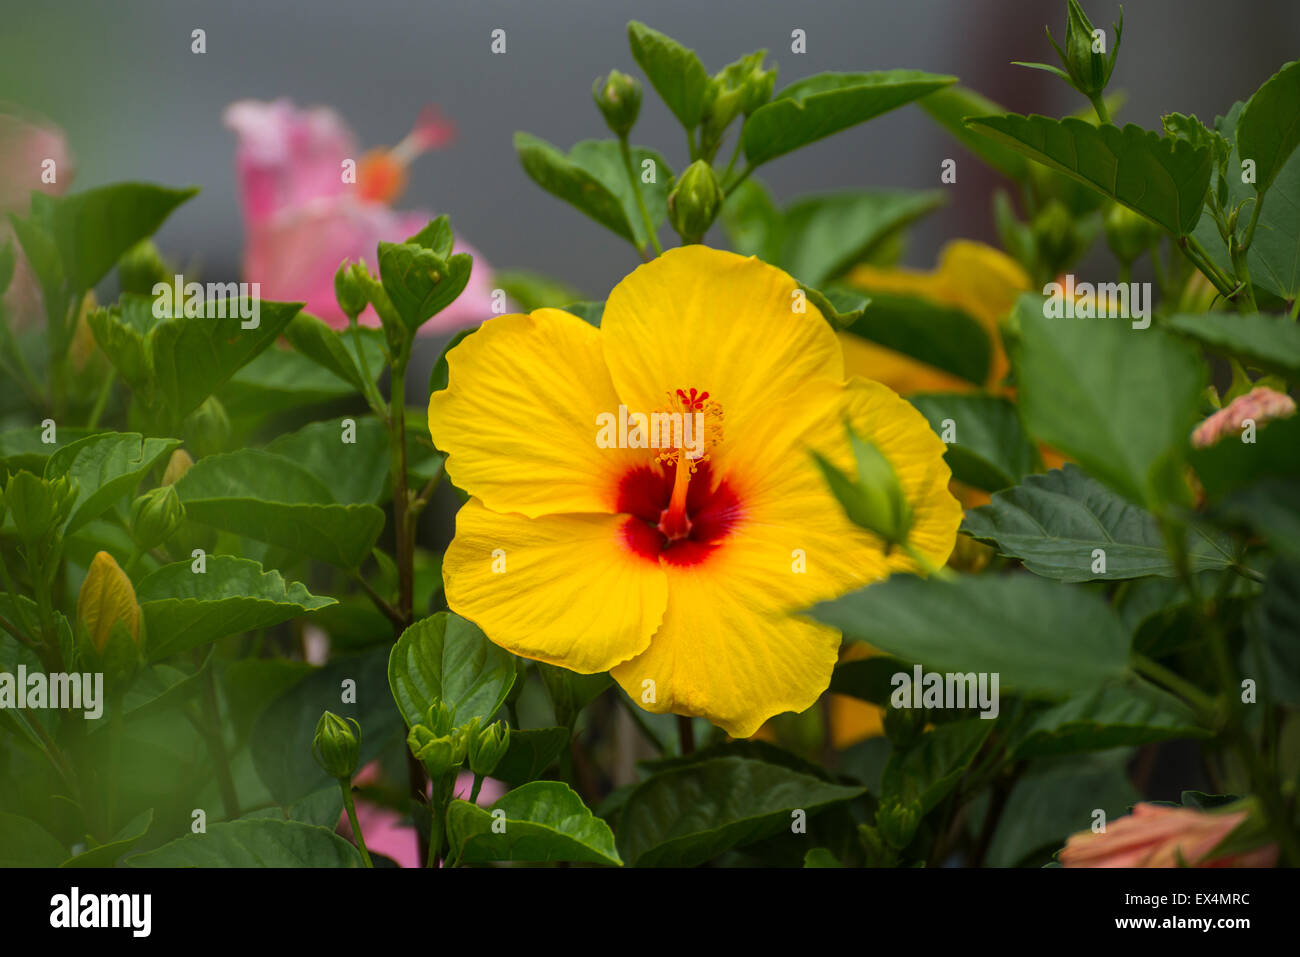 Flowering Hibiscus Plants For Sale At Pioneer Days Festival In High